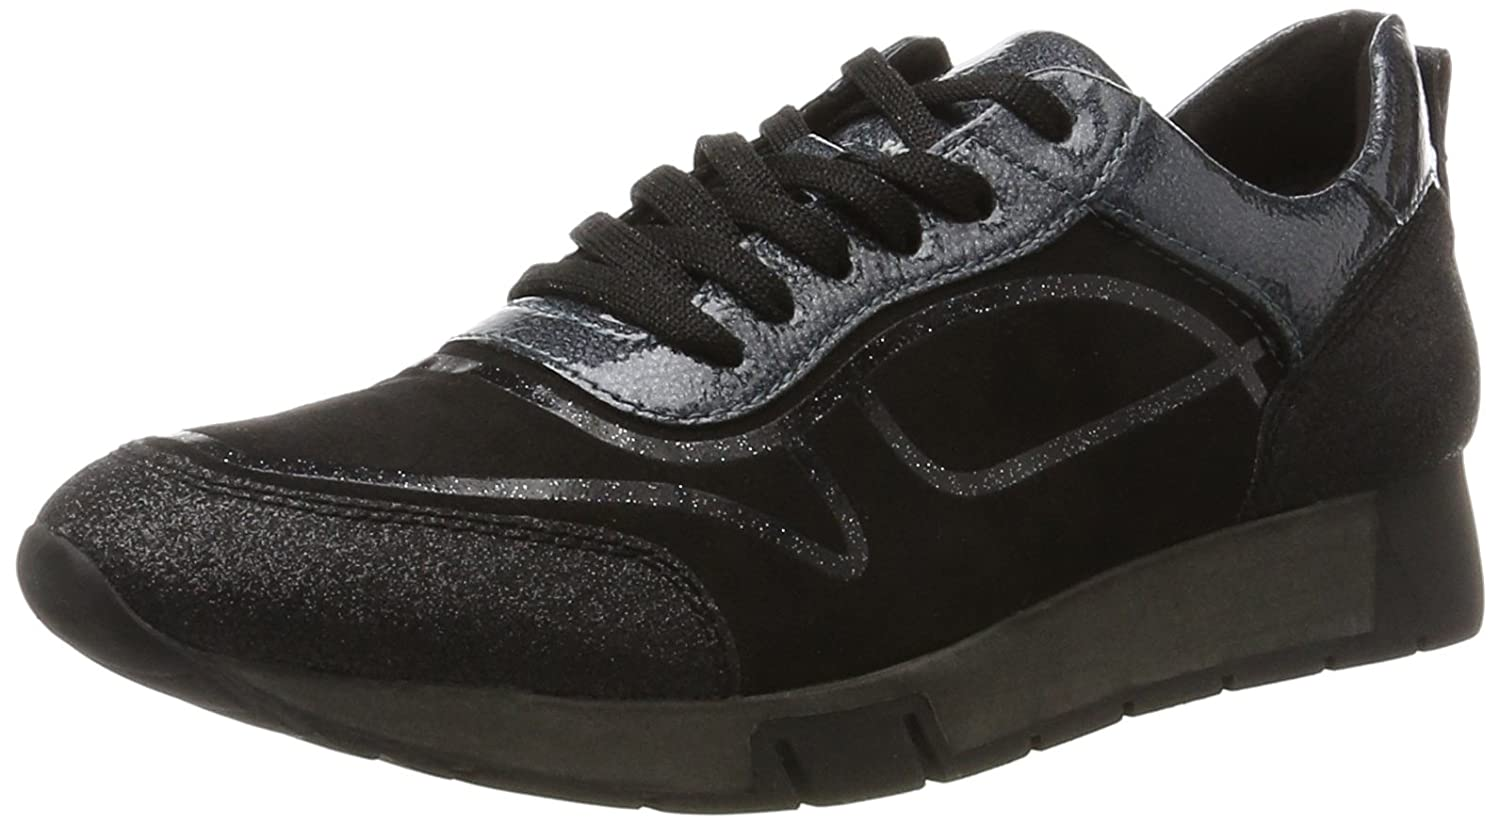 Womens 23718 Low-Top Sneakers Tamaris